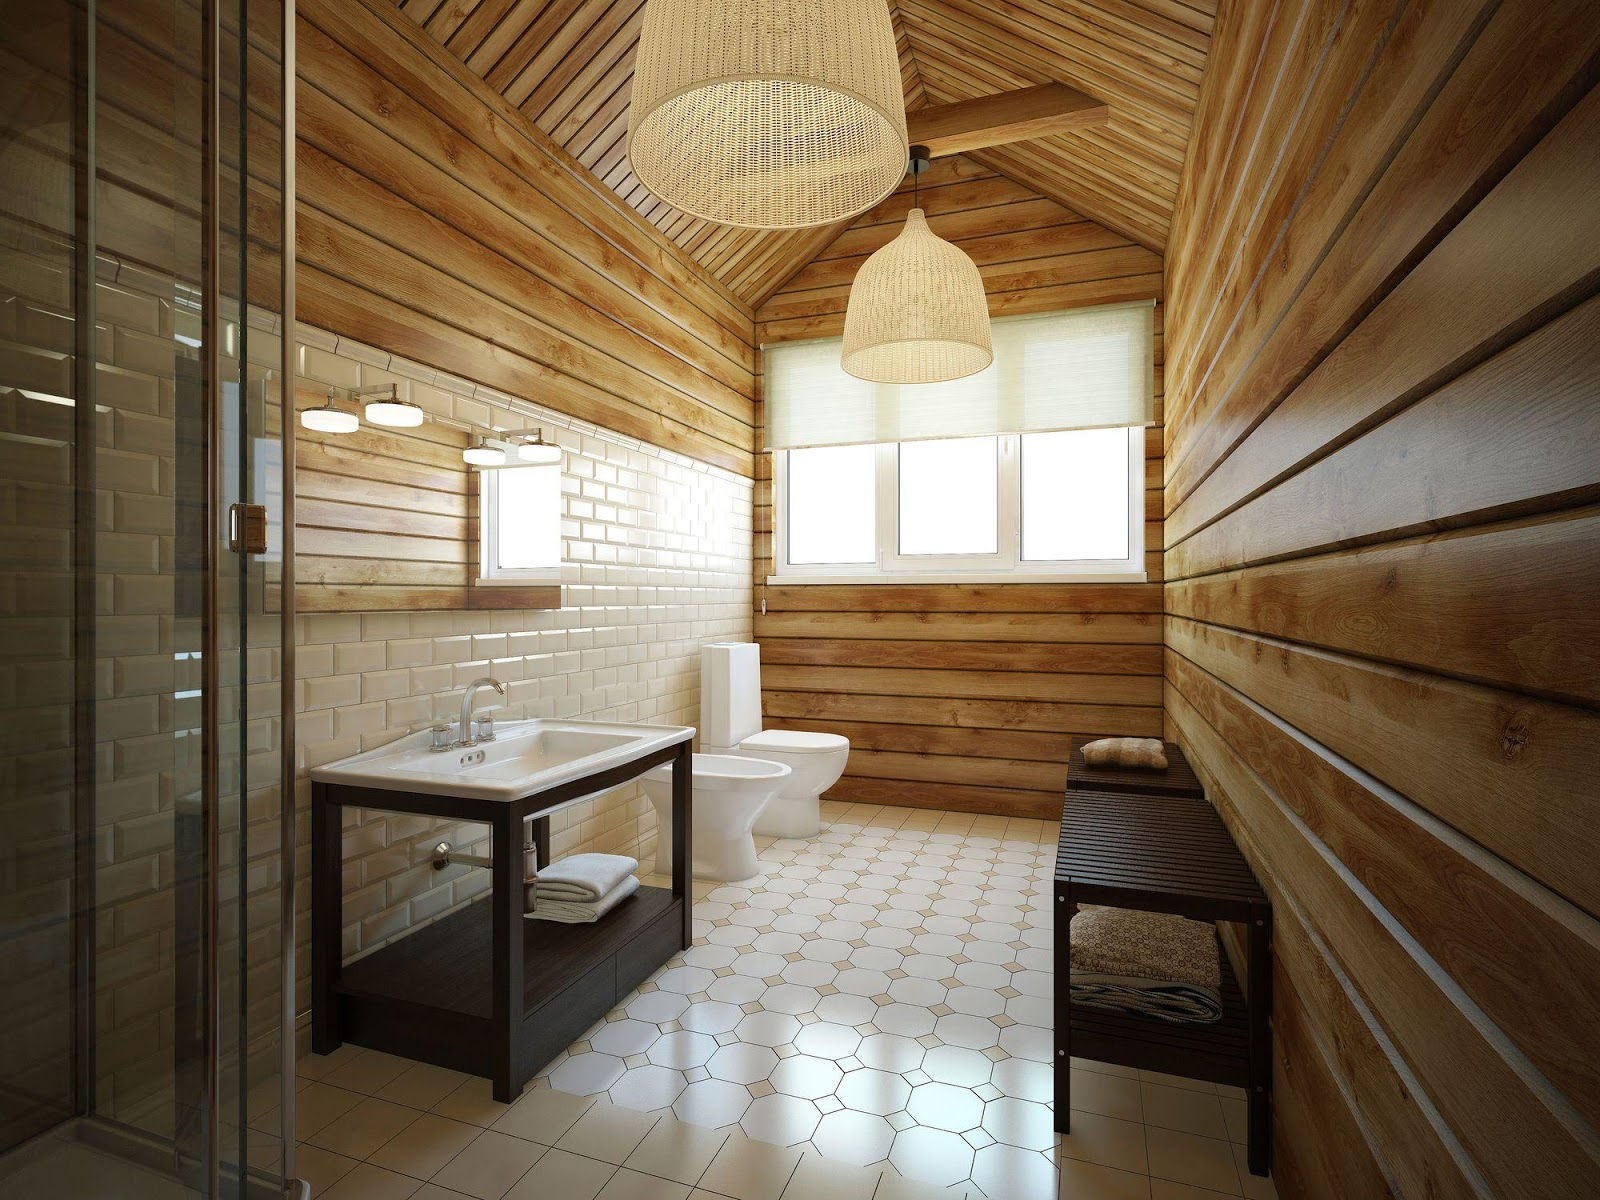 Best 8 Ways to Create a Perfect Bathroom with Subway Tiles